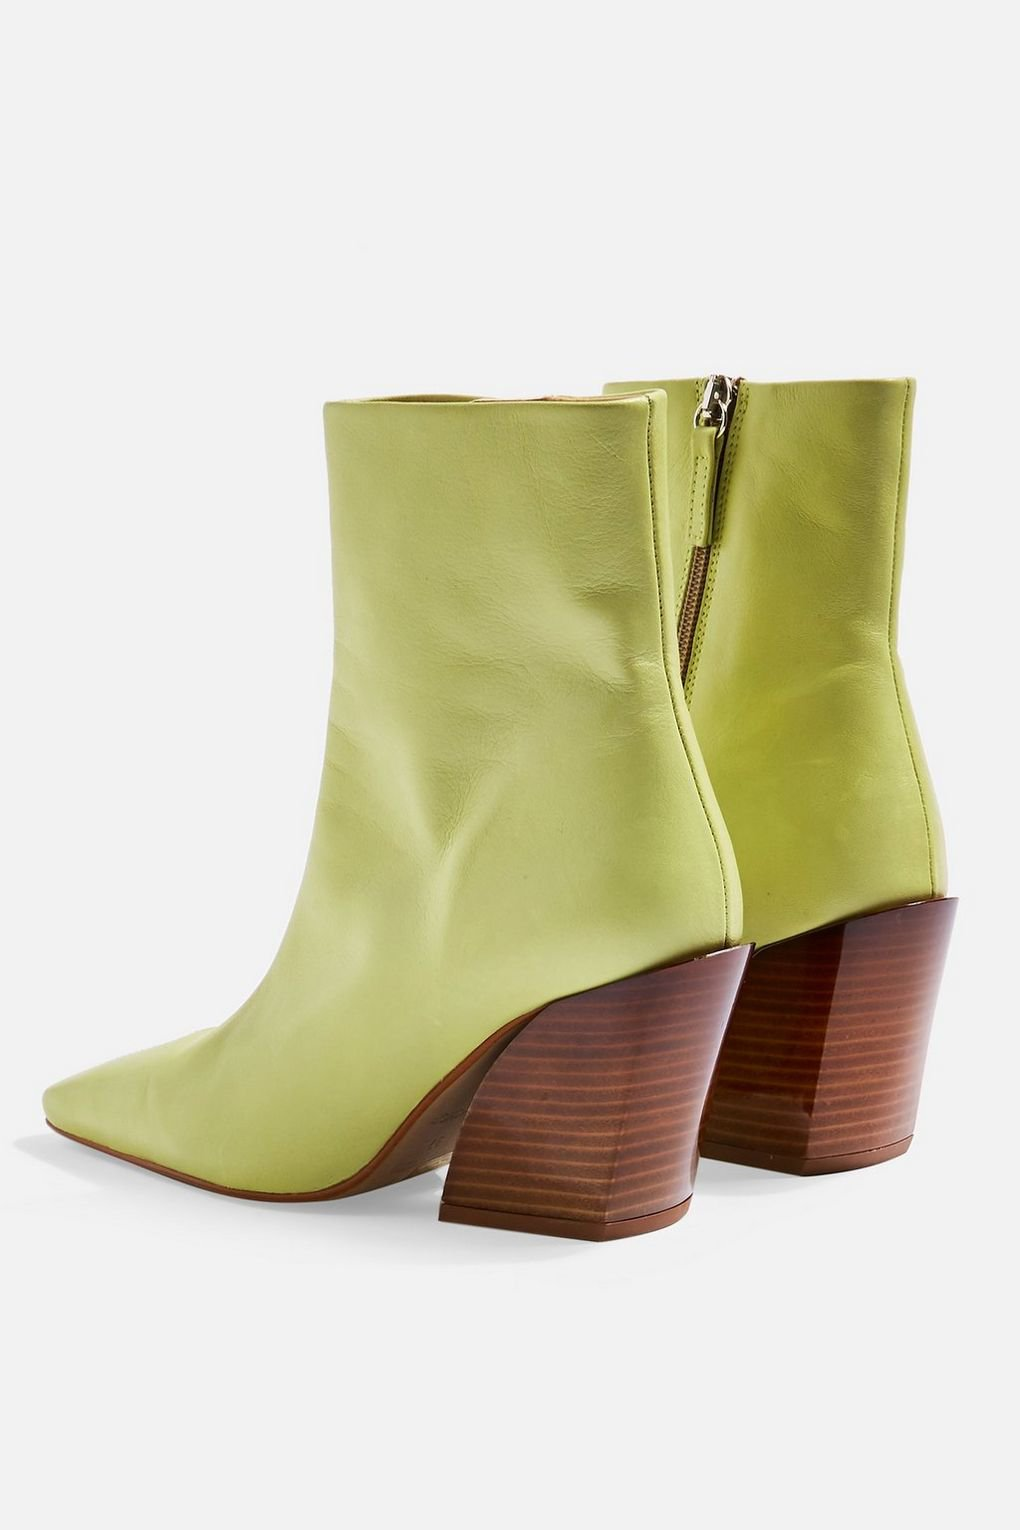 HENLEY High Ankle Boots - Boots - Shoes - Topshop